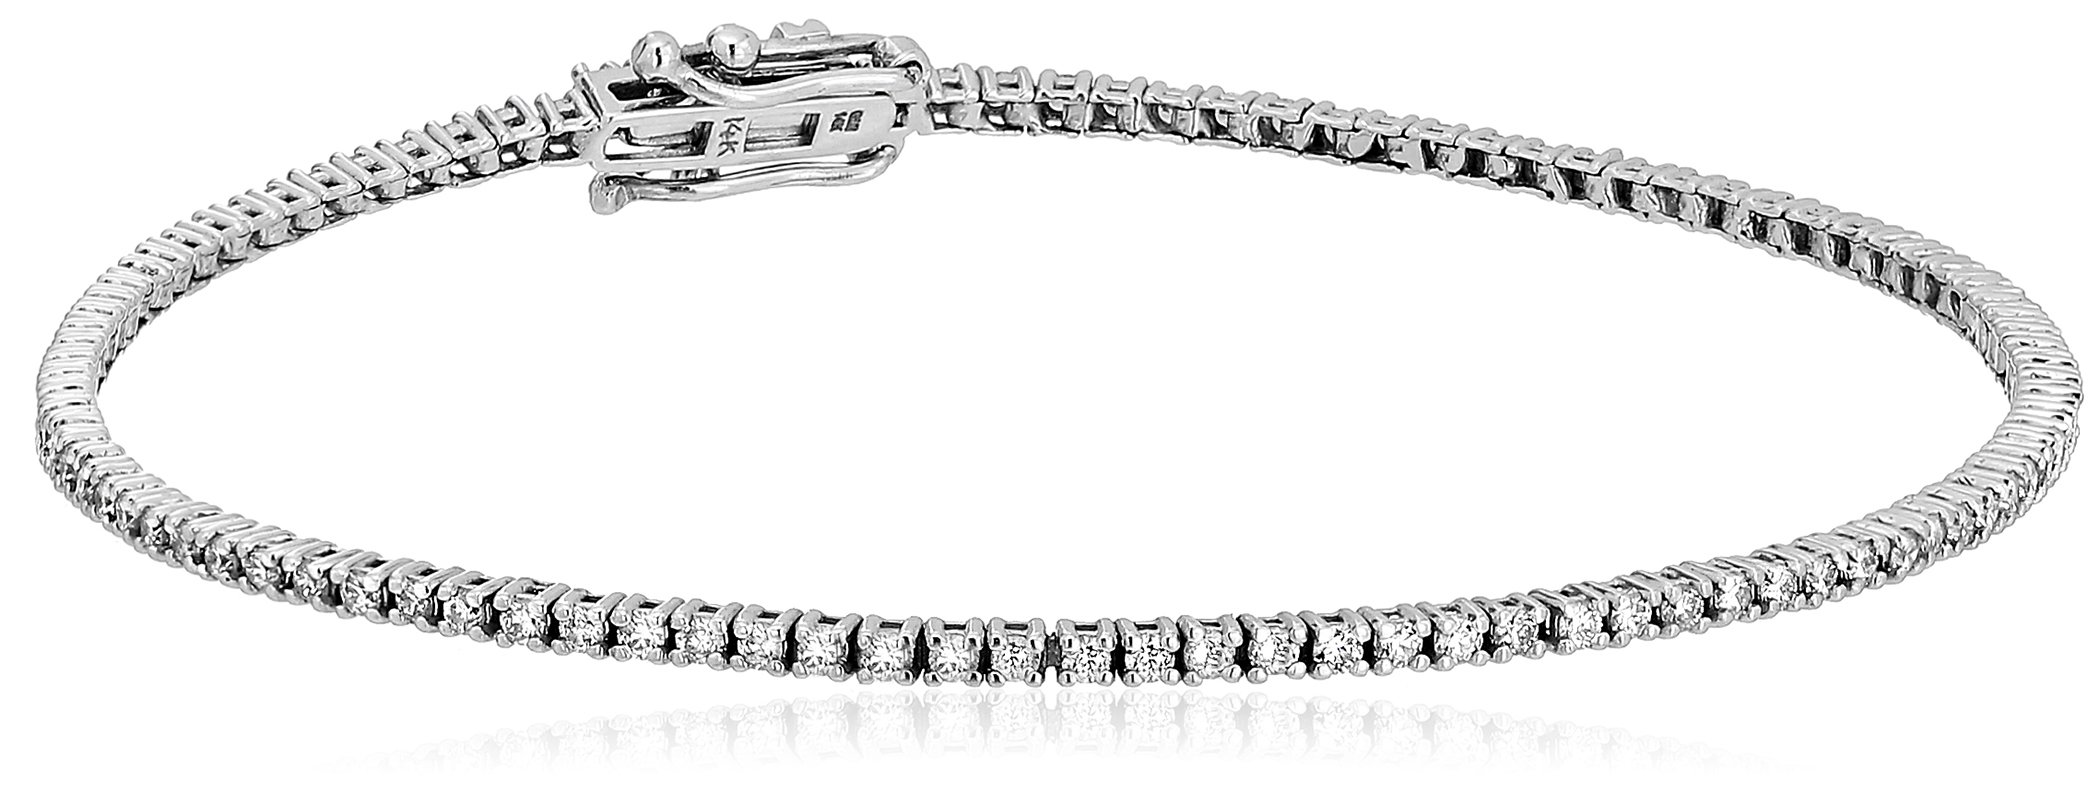 1 Carat Certified 14K White Gold Diamond Tennis Bracelet with Double Click Safety Clasp by Amazon Collection